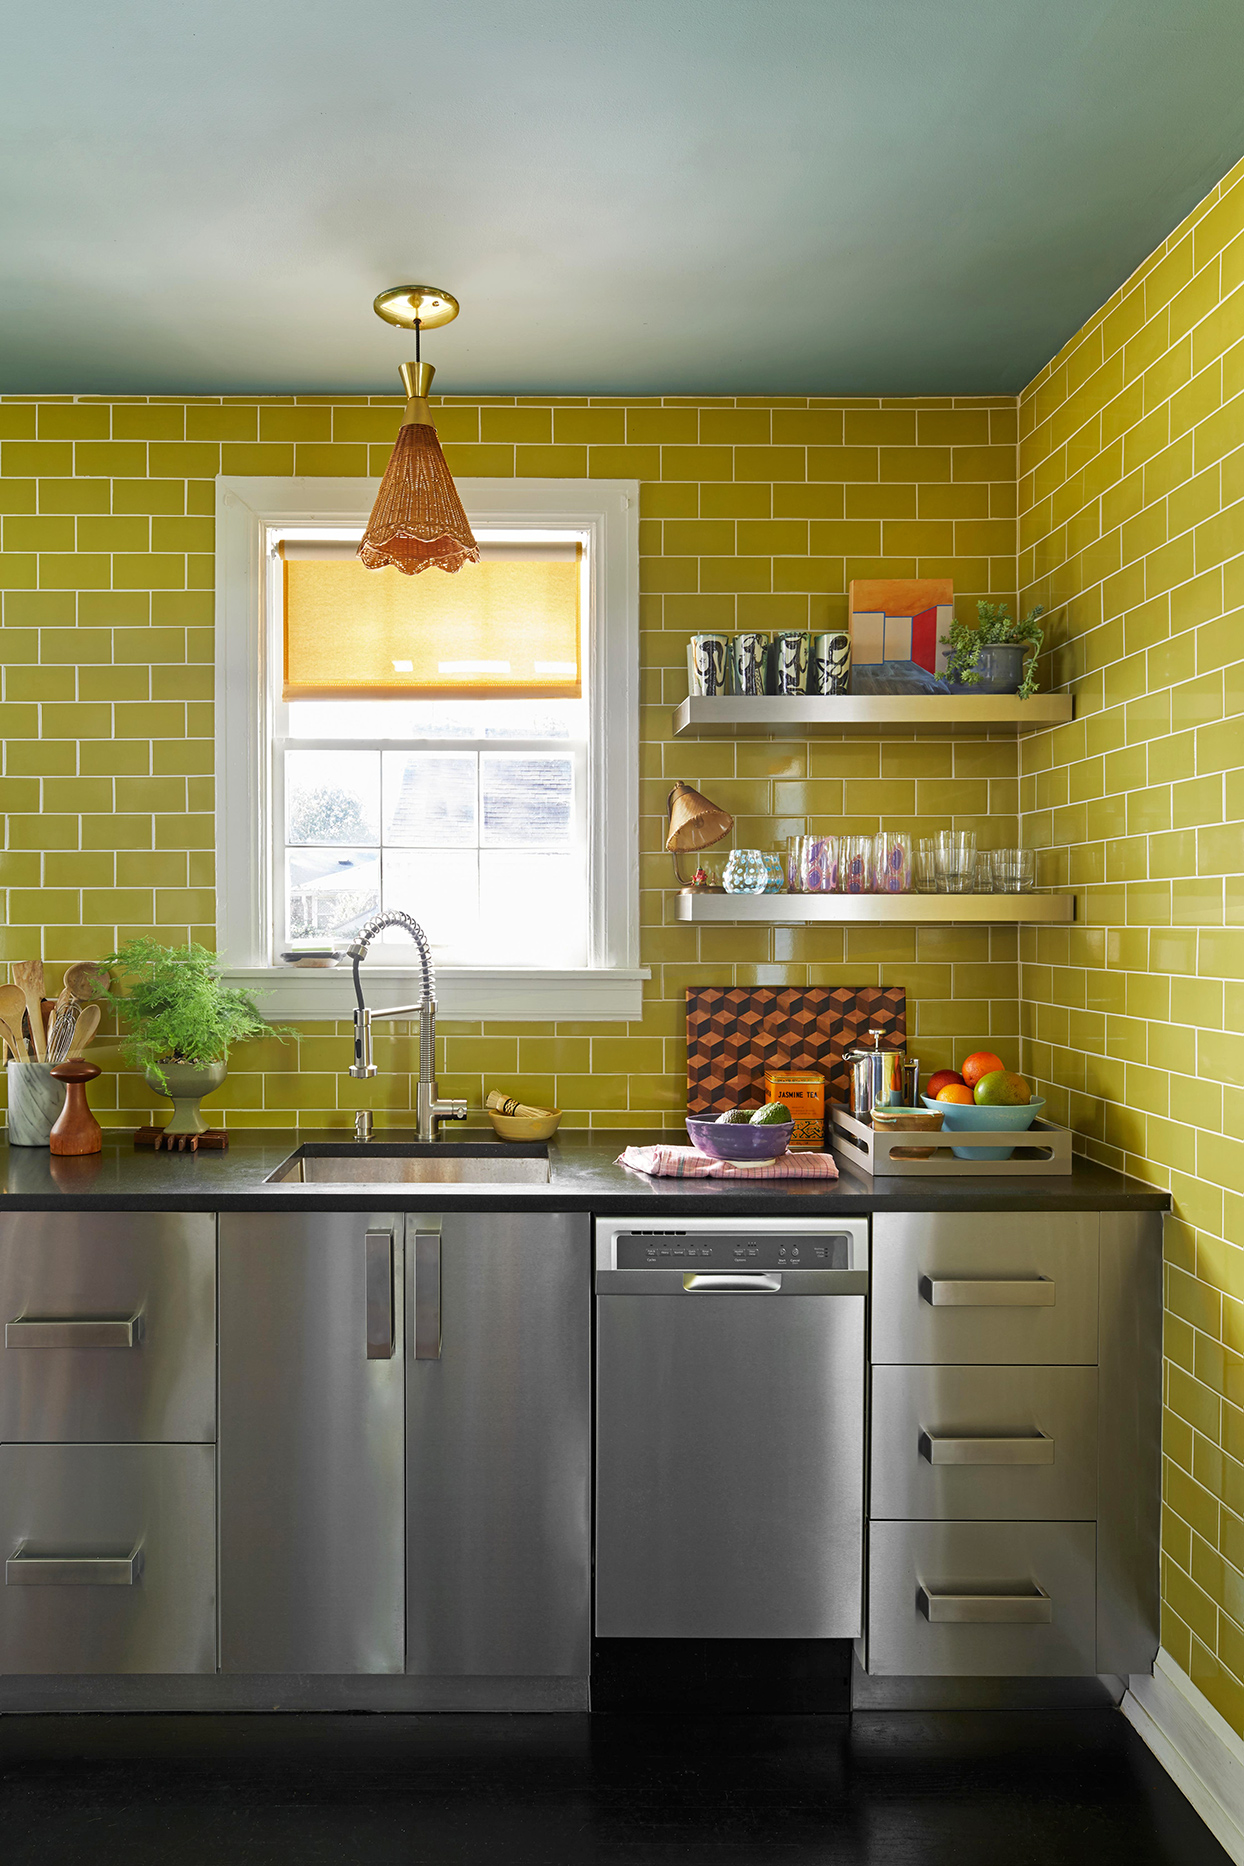 stainless steel kitchen with chartreuse subway tile on walls